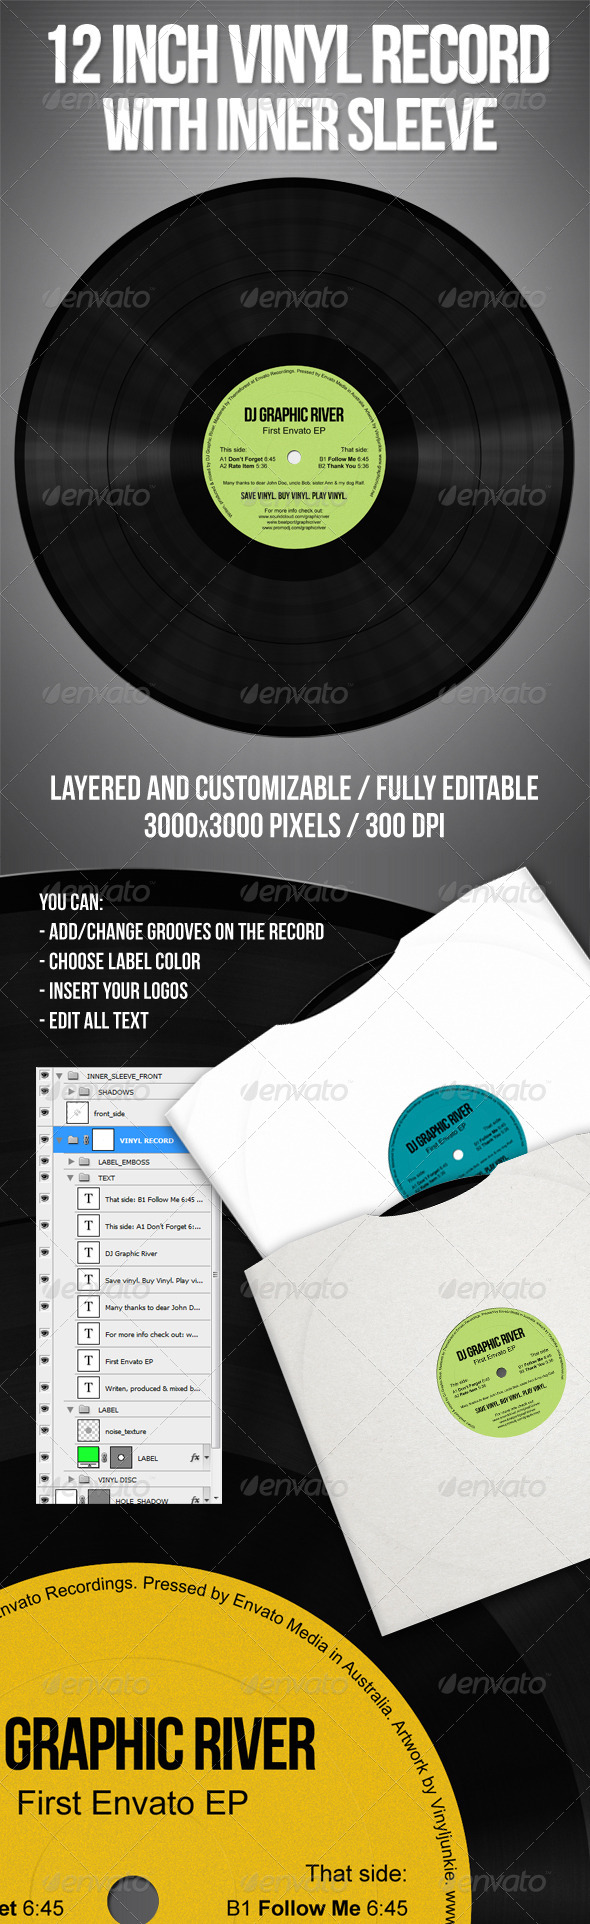 GraphicRiver 12 Inch Vinyl Record With Inner Sleeve 4045033